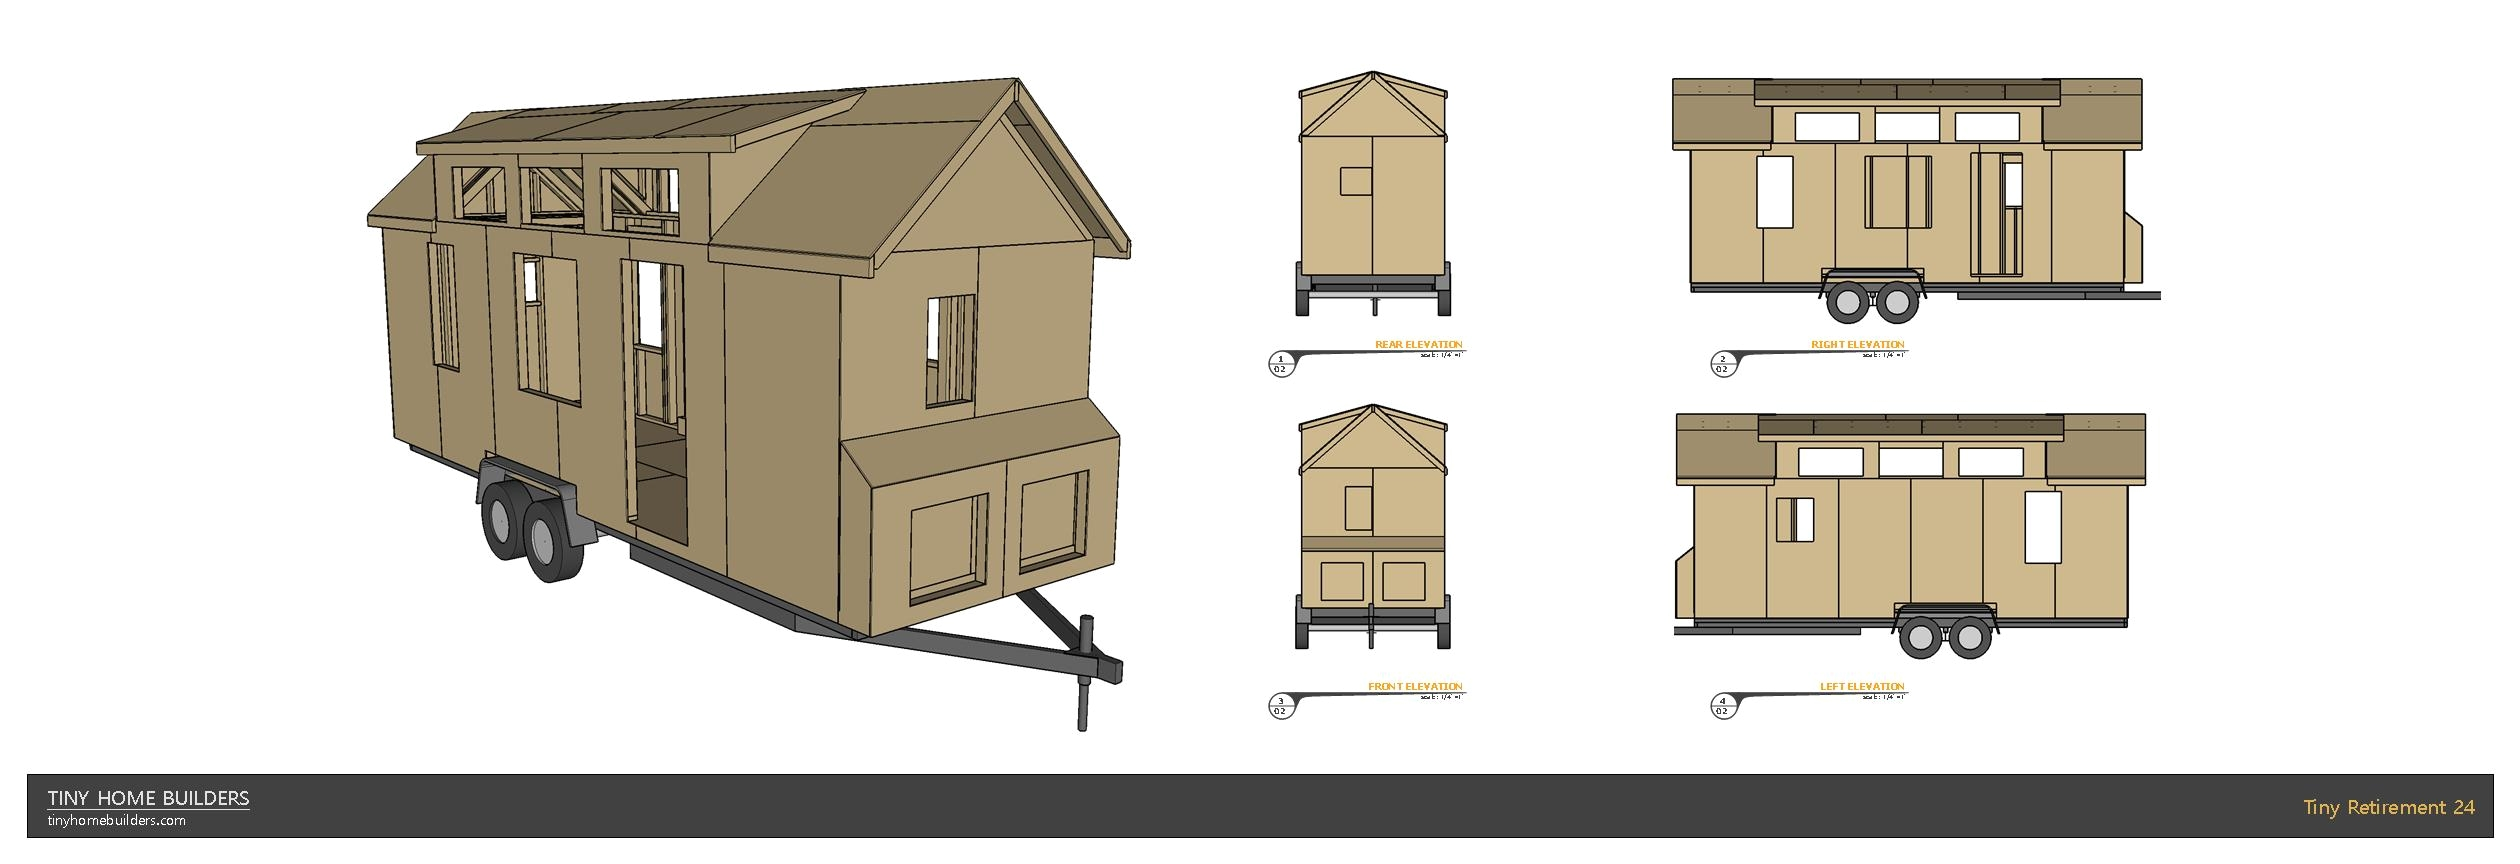 mountain house plans with a view tiny house plans tiny home builders